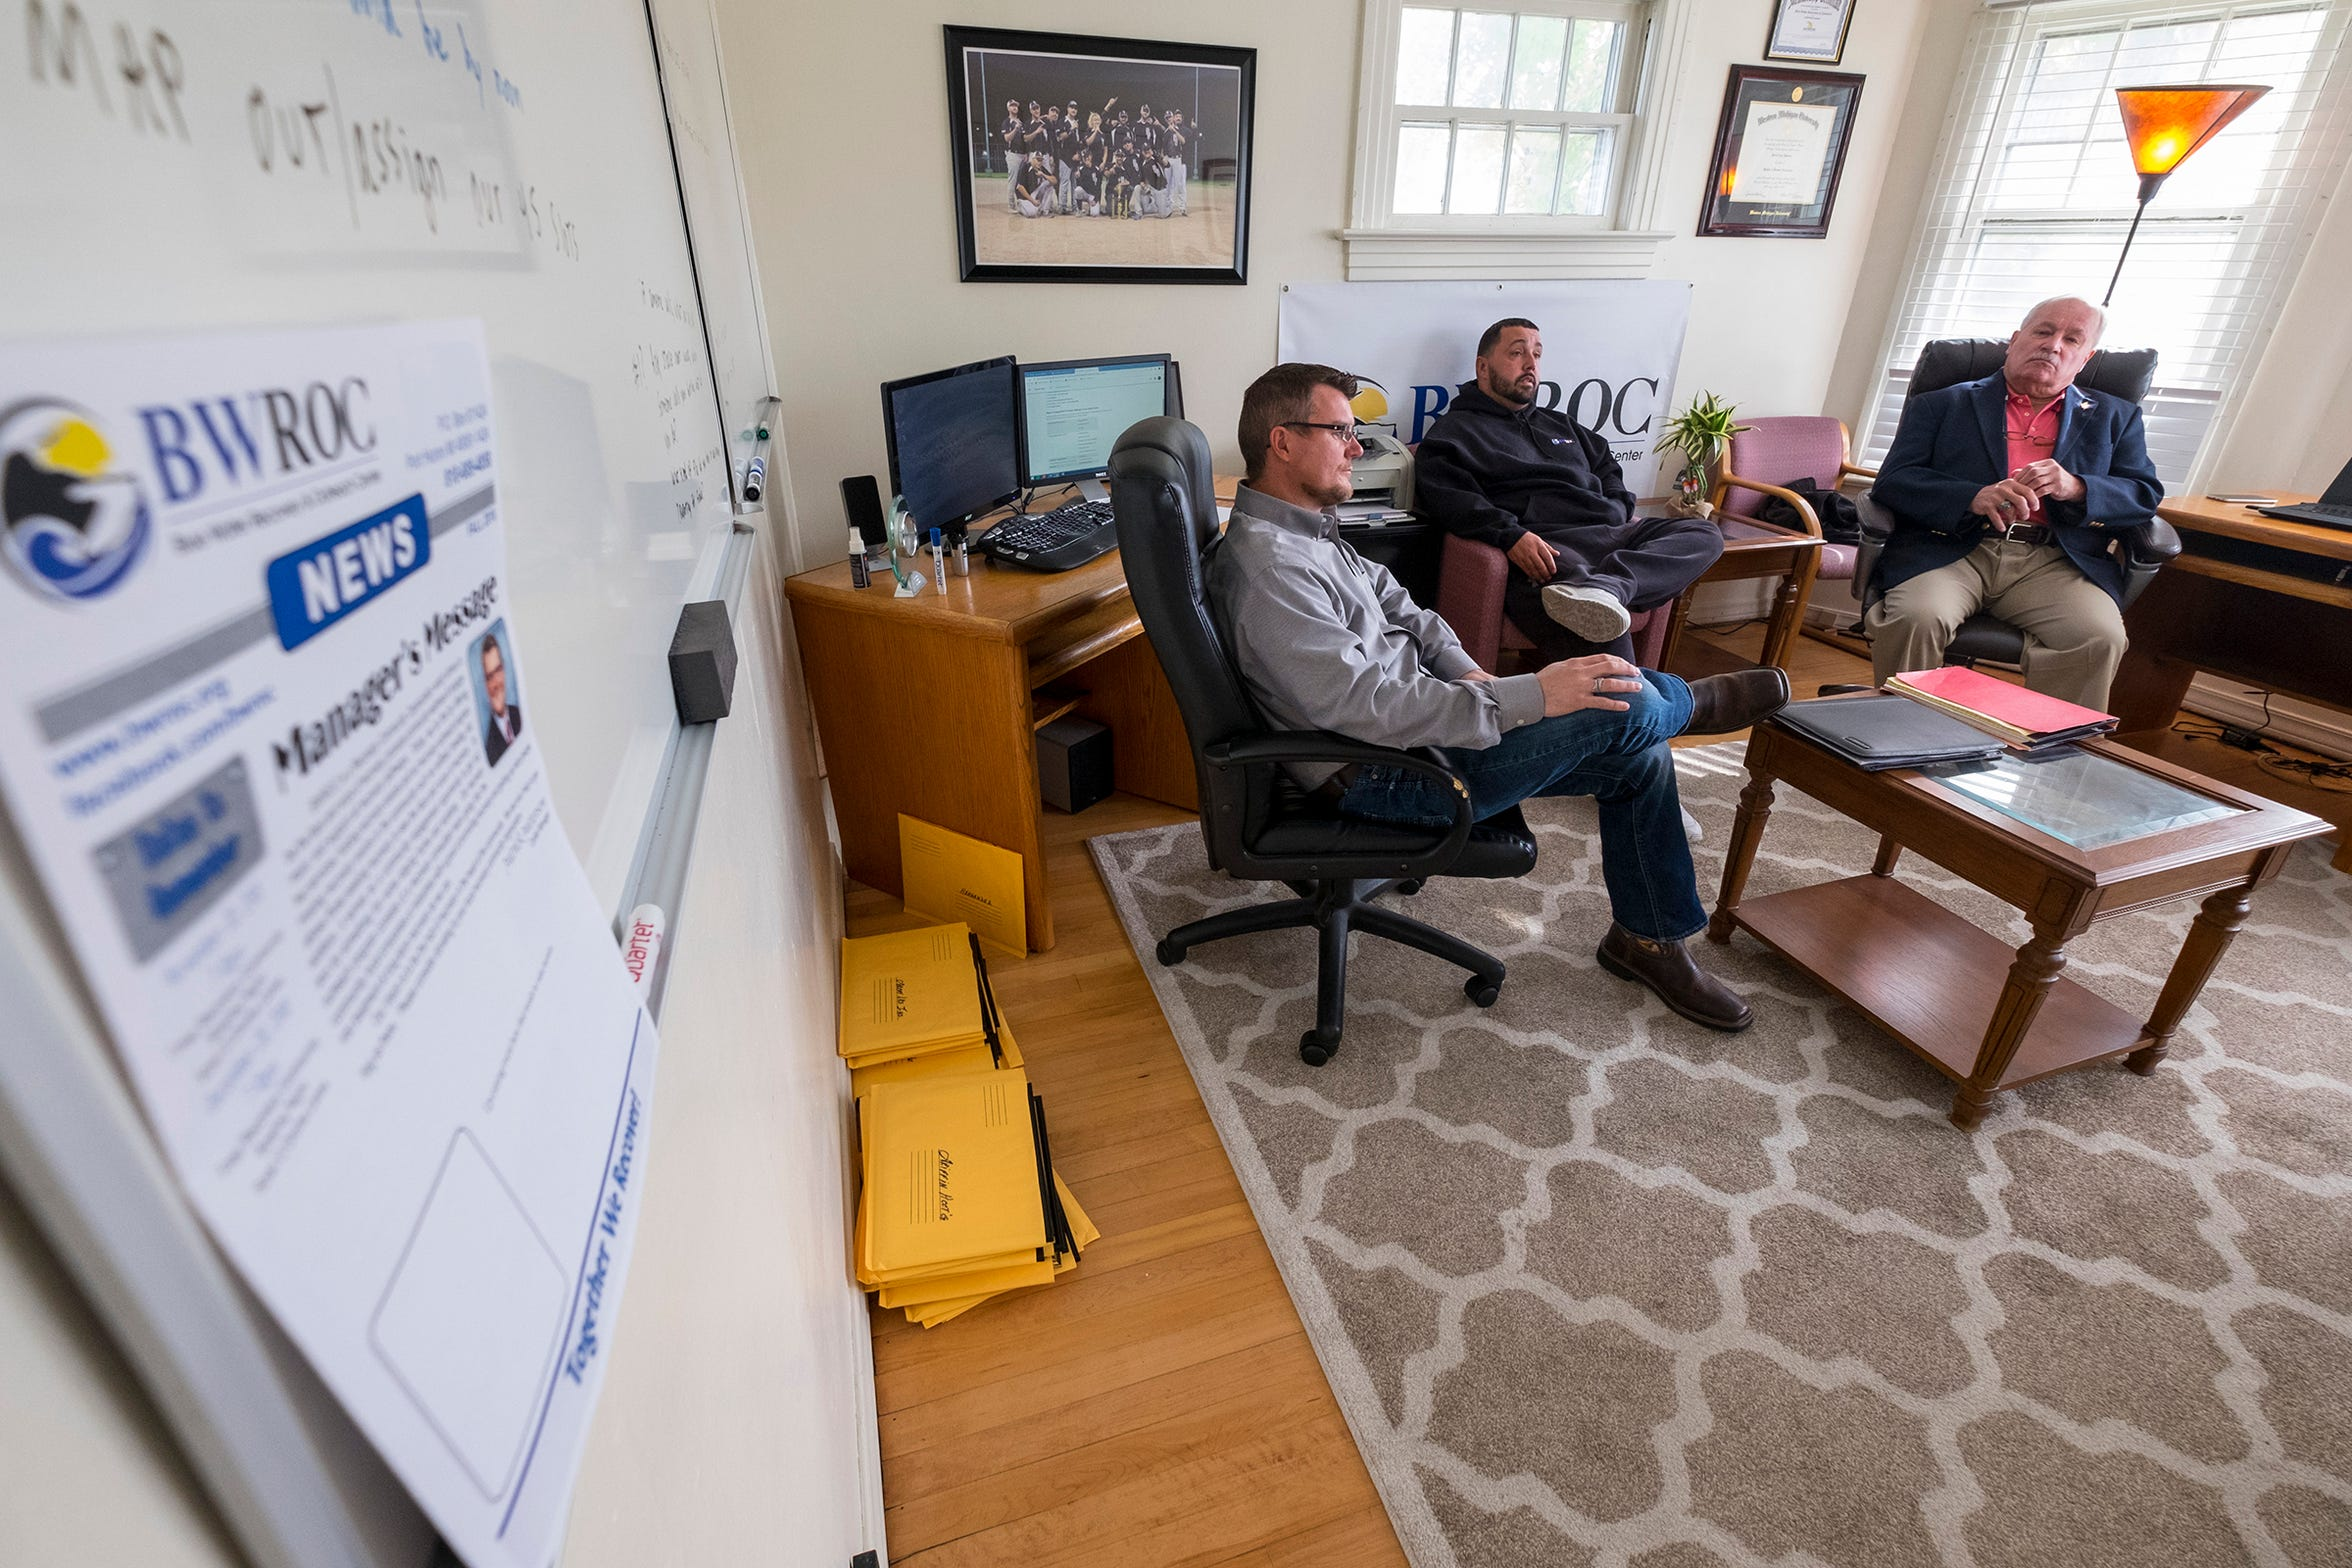 The front page of the BWROC's upcoming newsletter sits on a shelf while center Manager Patrick Patterson, left, meets with volunteers Justin Kroll, center, and Nino Cimini on Tuesday, Oct. 30, 2018, in the center's office in The Roost in Port Huron.